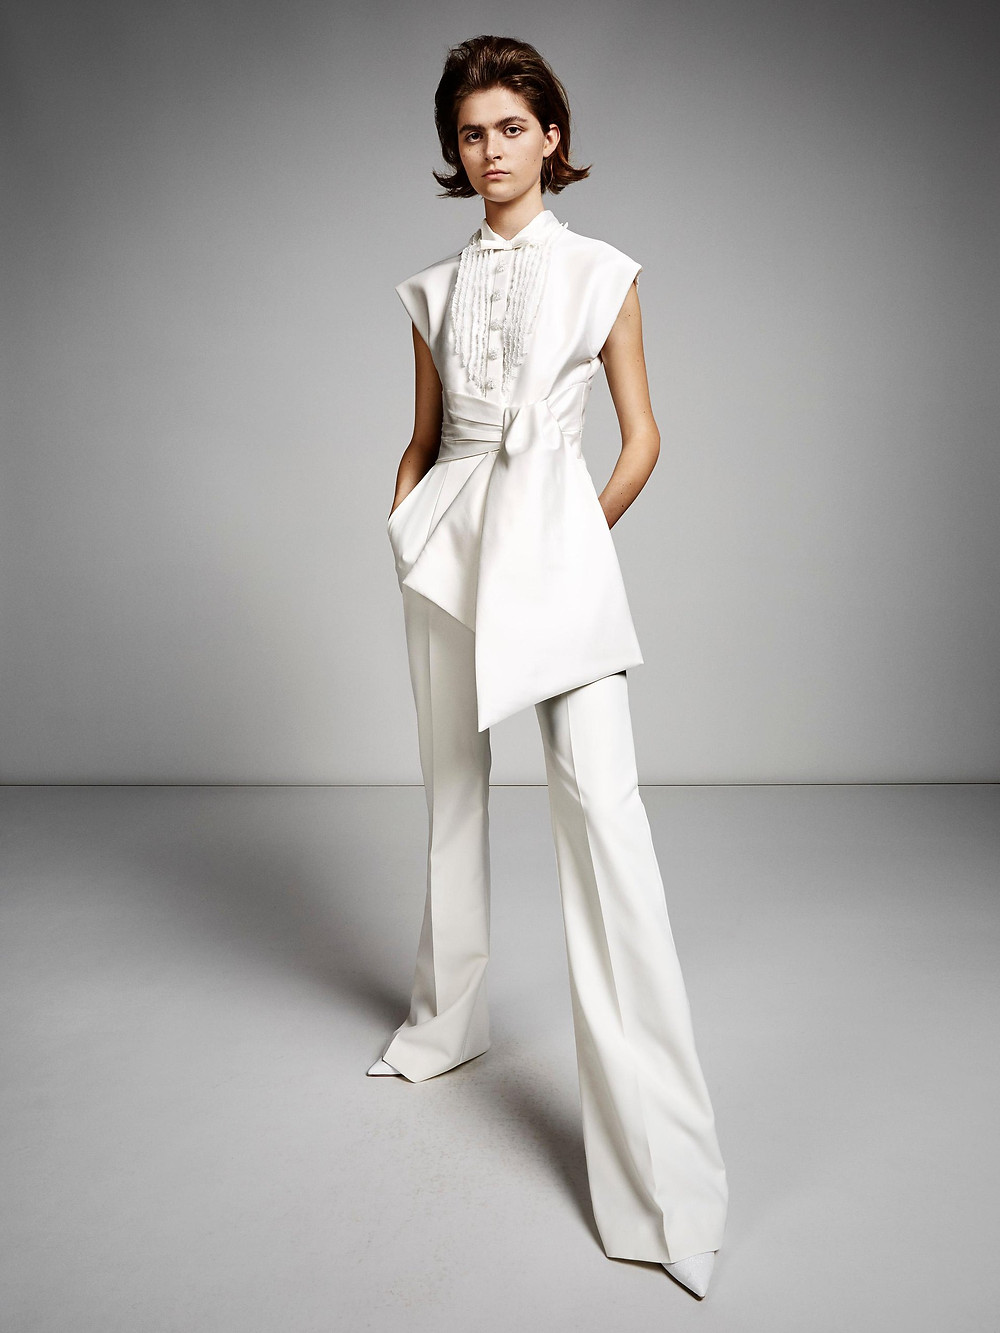 A Viktor & Rolf wedding jumpsuit or pantsuit with a bow